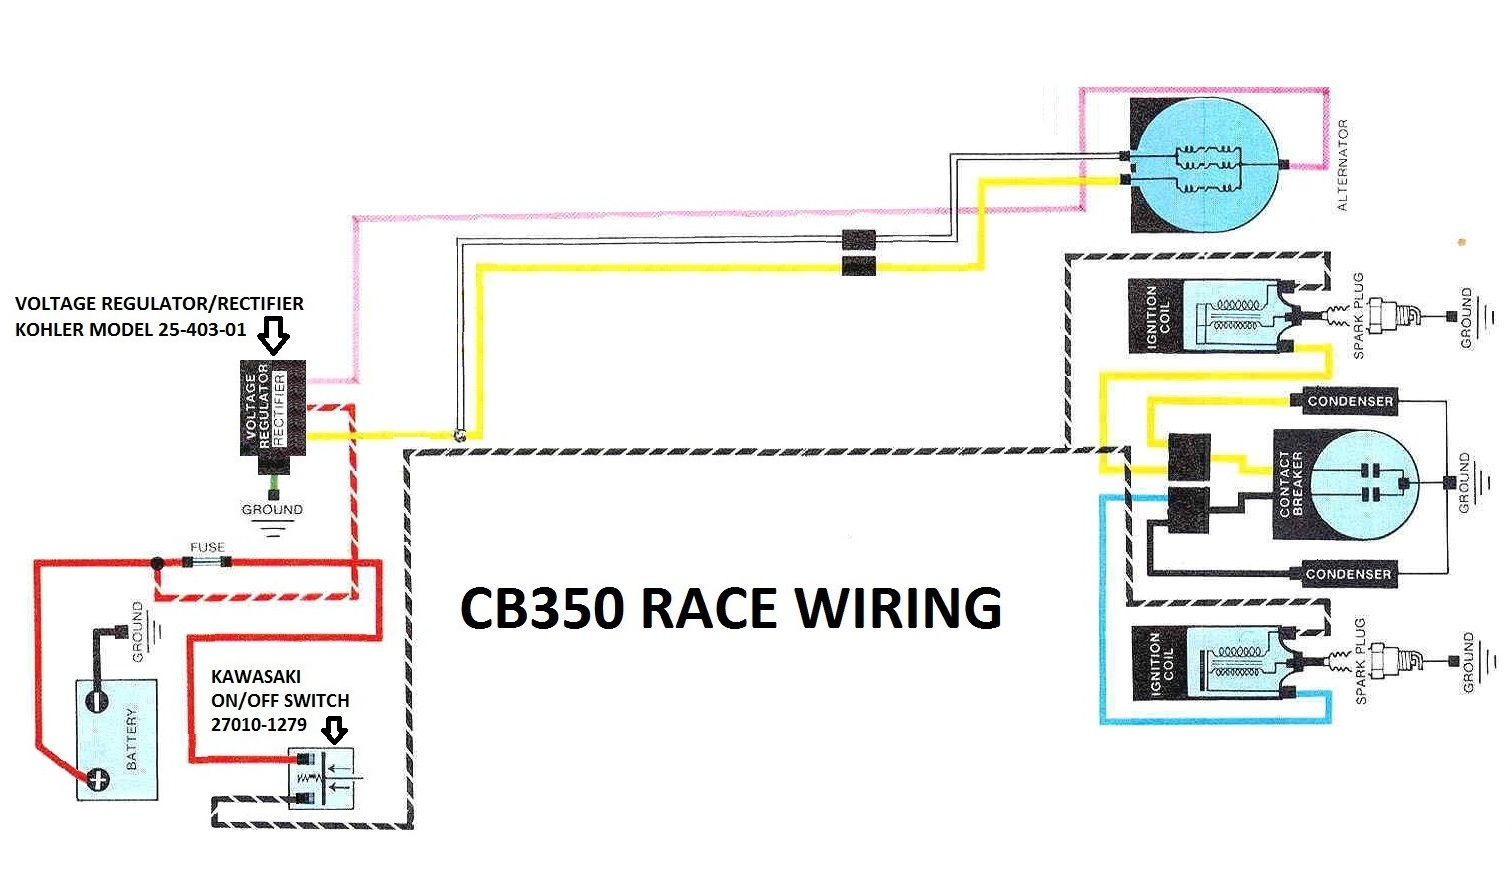 Cb 350 Wiring Diagram Opinions About Motorcycle Regulator Rectifier Cb350 Race A Question Voltage Rh Hondatwins Net Antenna Honda